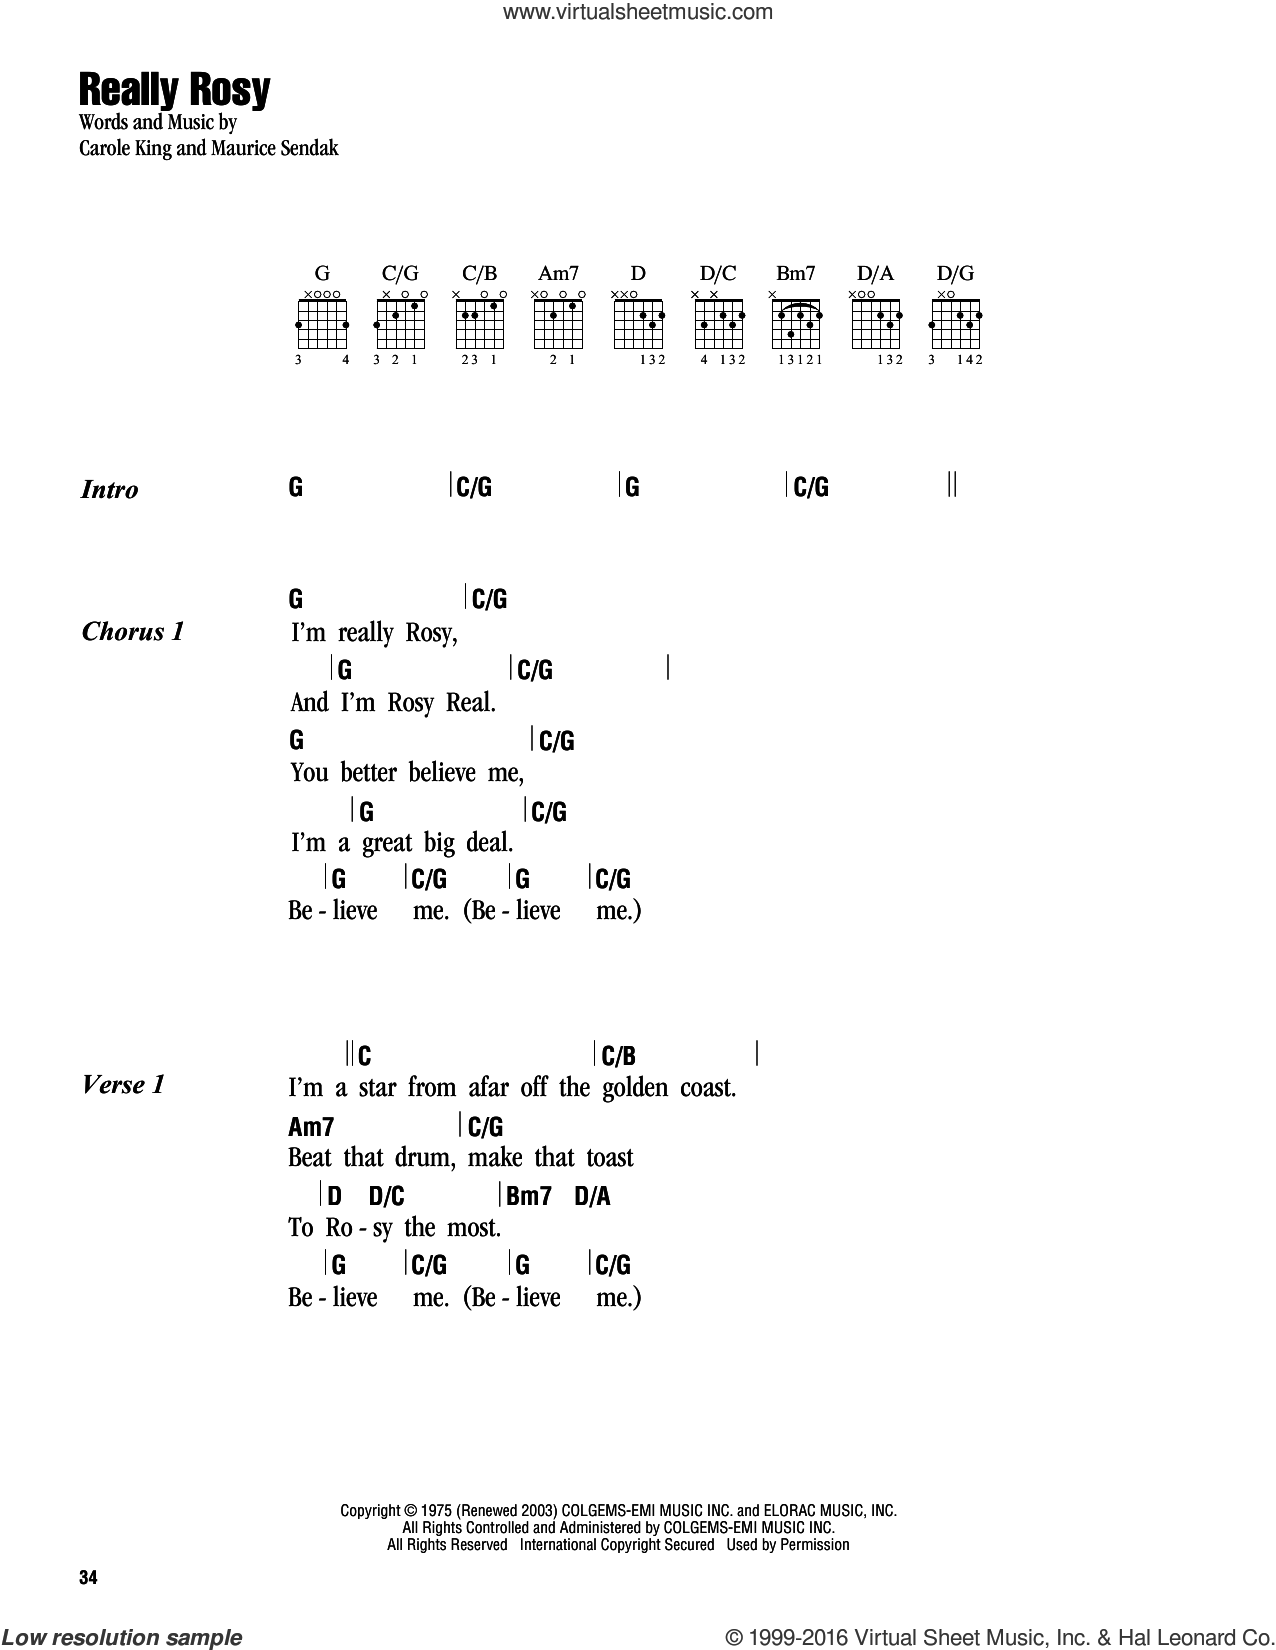 Really Rosy sheet music for guitar (chords) by Carole King and Maurice Sendak, intermediate skill level